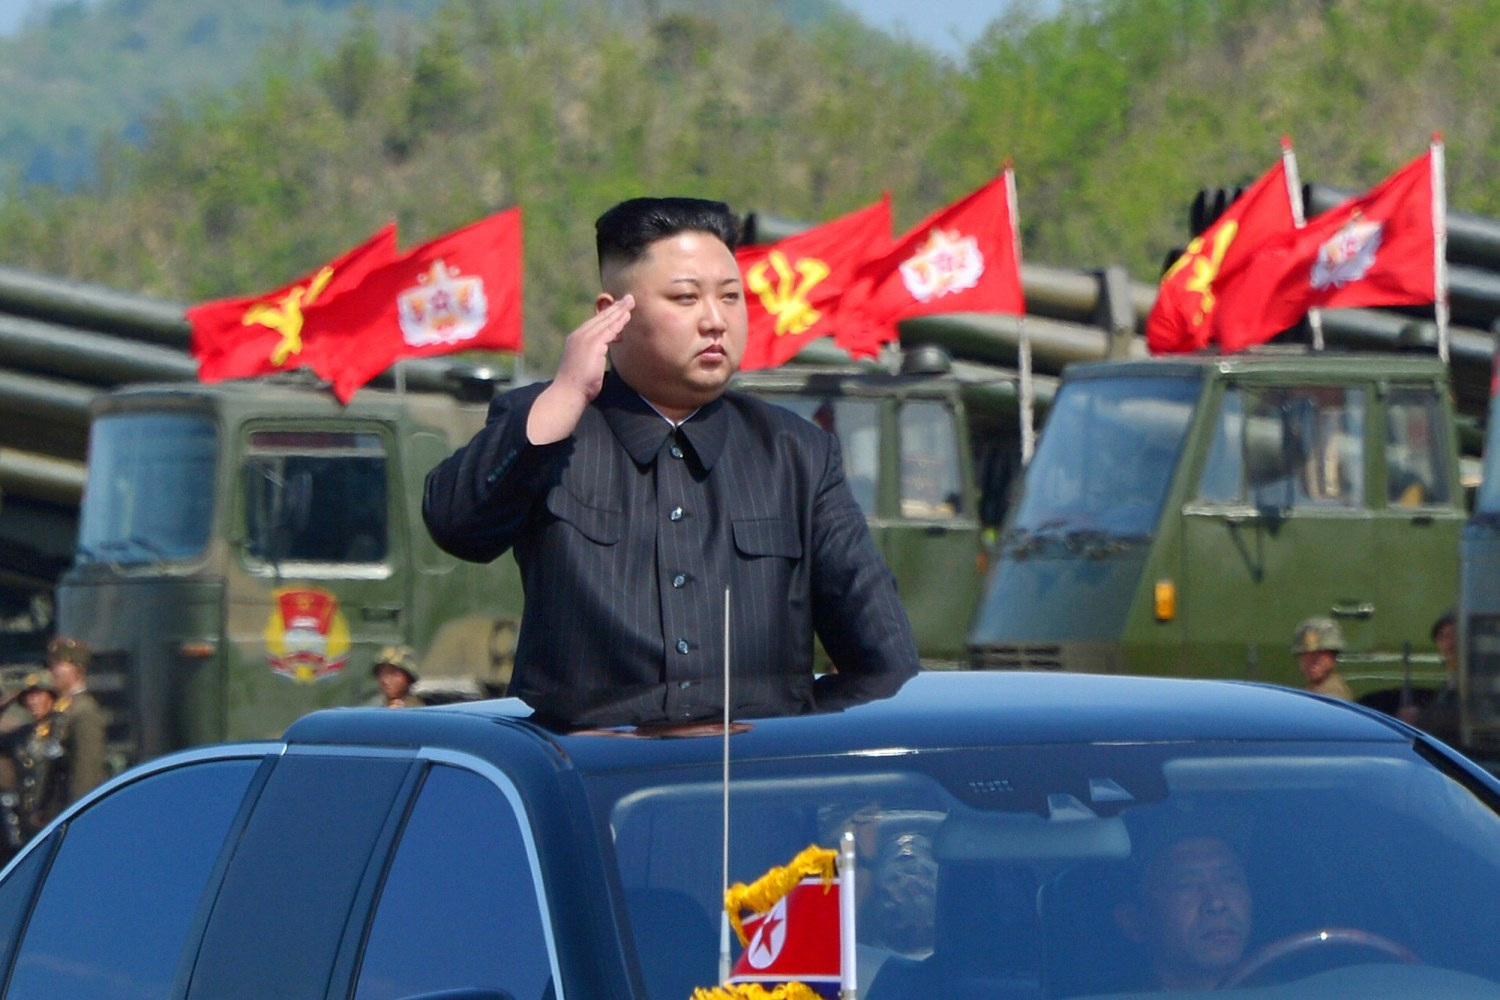 Attack from North Korea not imminent